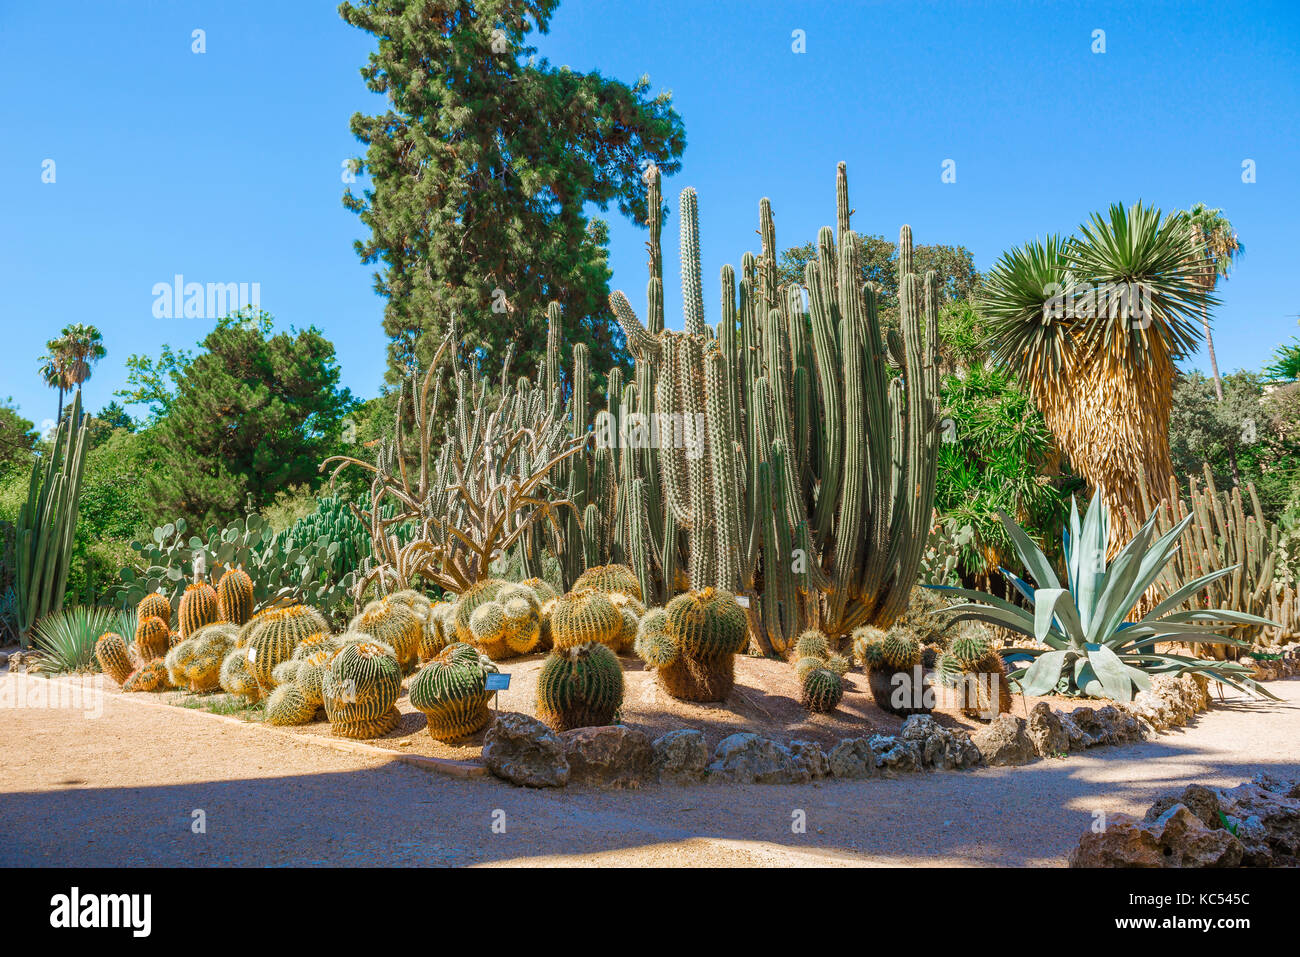 Valencia Spain Botanical Garden, View Of Mature Cacti In A Part Of The  Desert Plants Section Of The Jardin Botanico In Valencia.